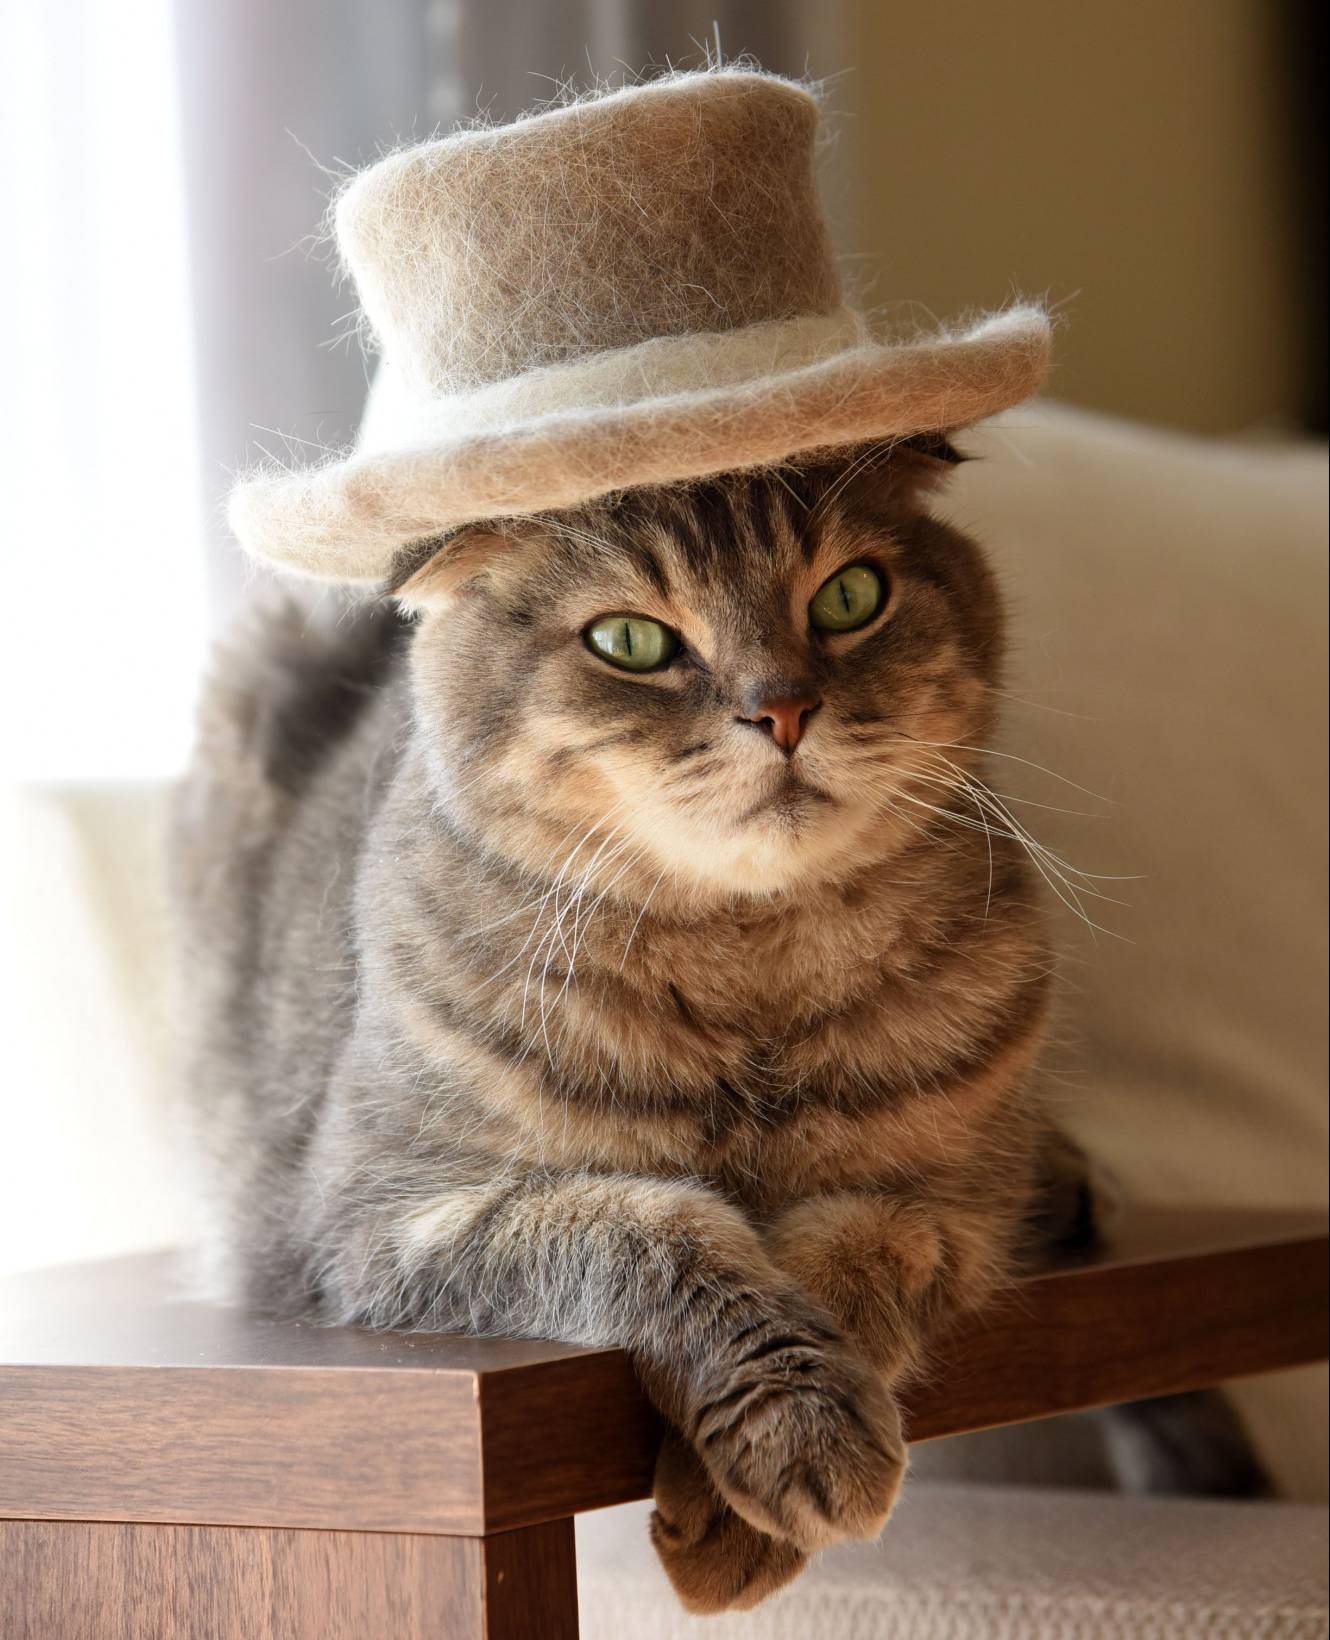 This Cat With A Hat Aww